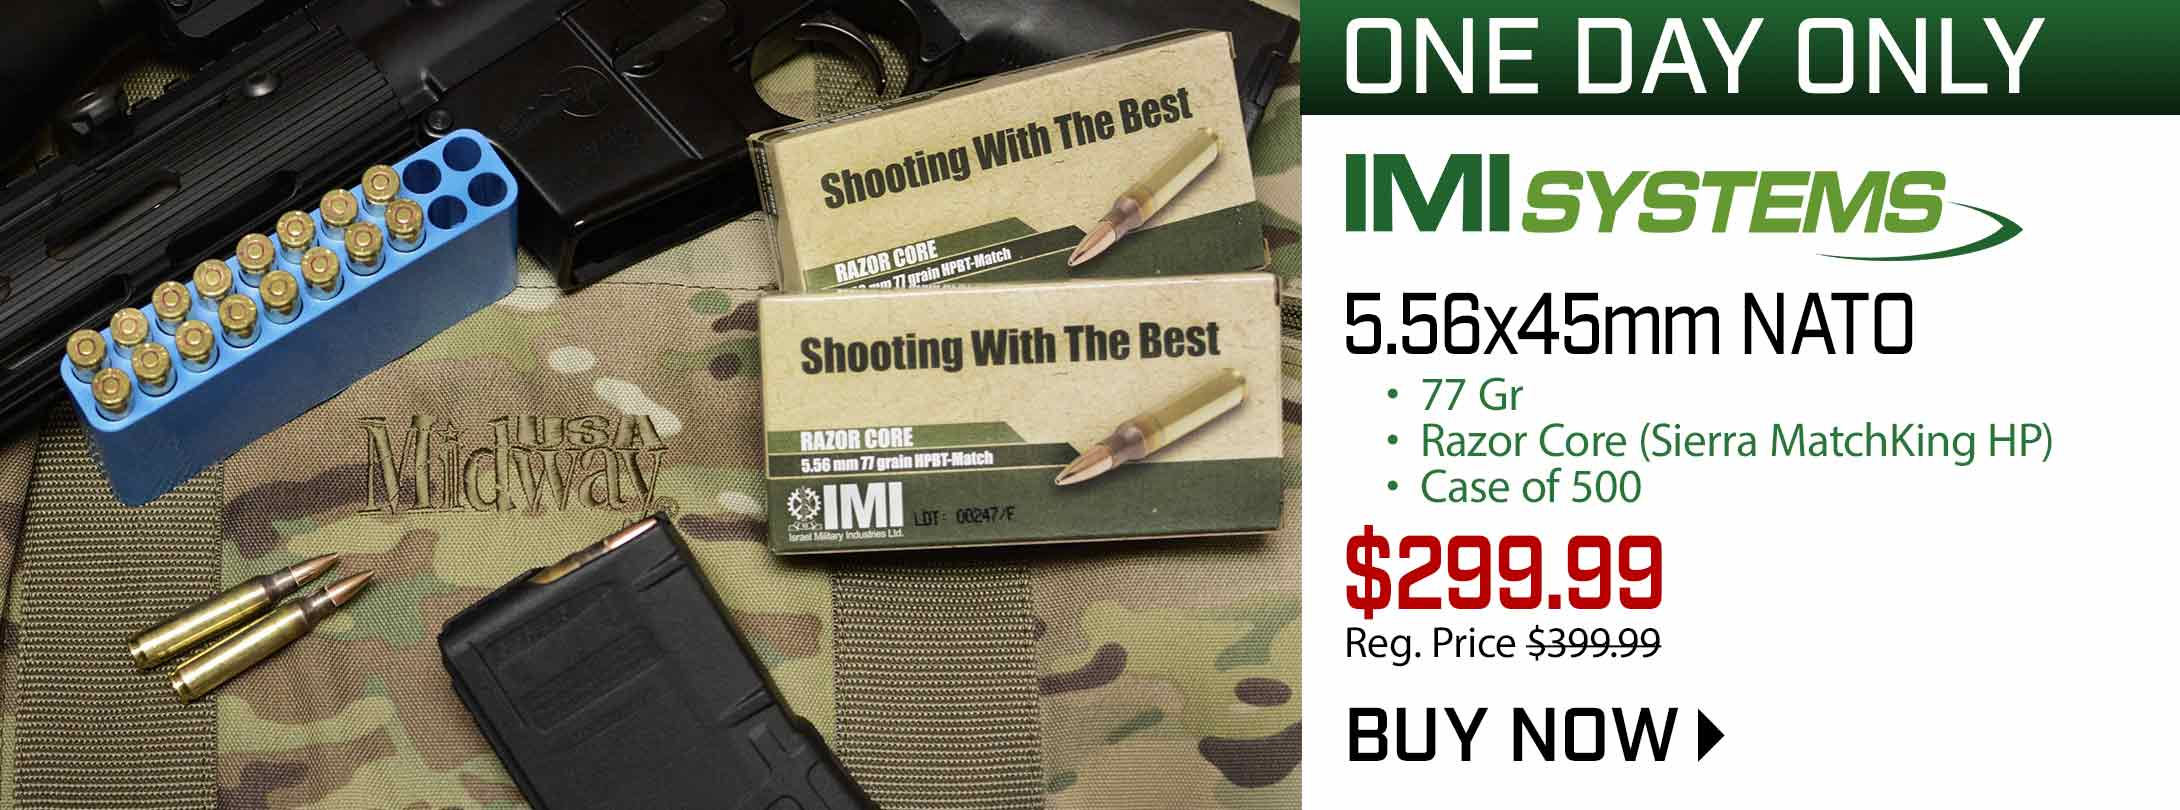 One Day Only: IMI 5.56x45mm Case of 500 - $299.99